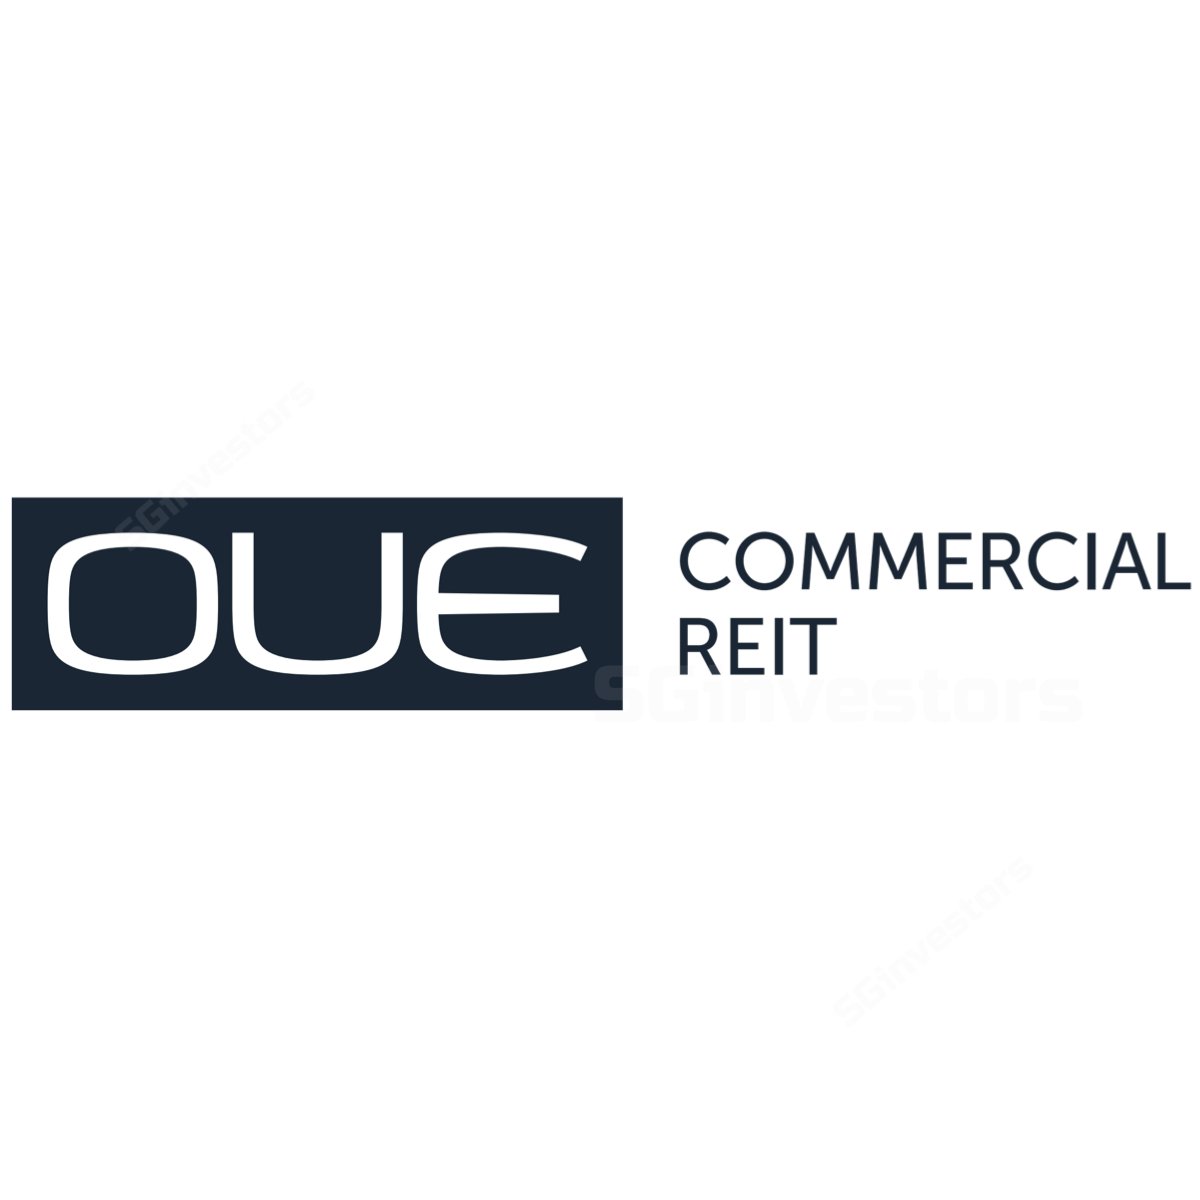 OUE Commercial REIT - OCBC Investment 2017-10-04: Higher Gearing Moving Forward